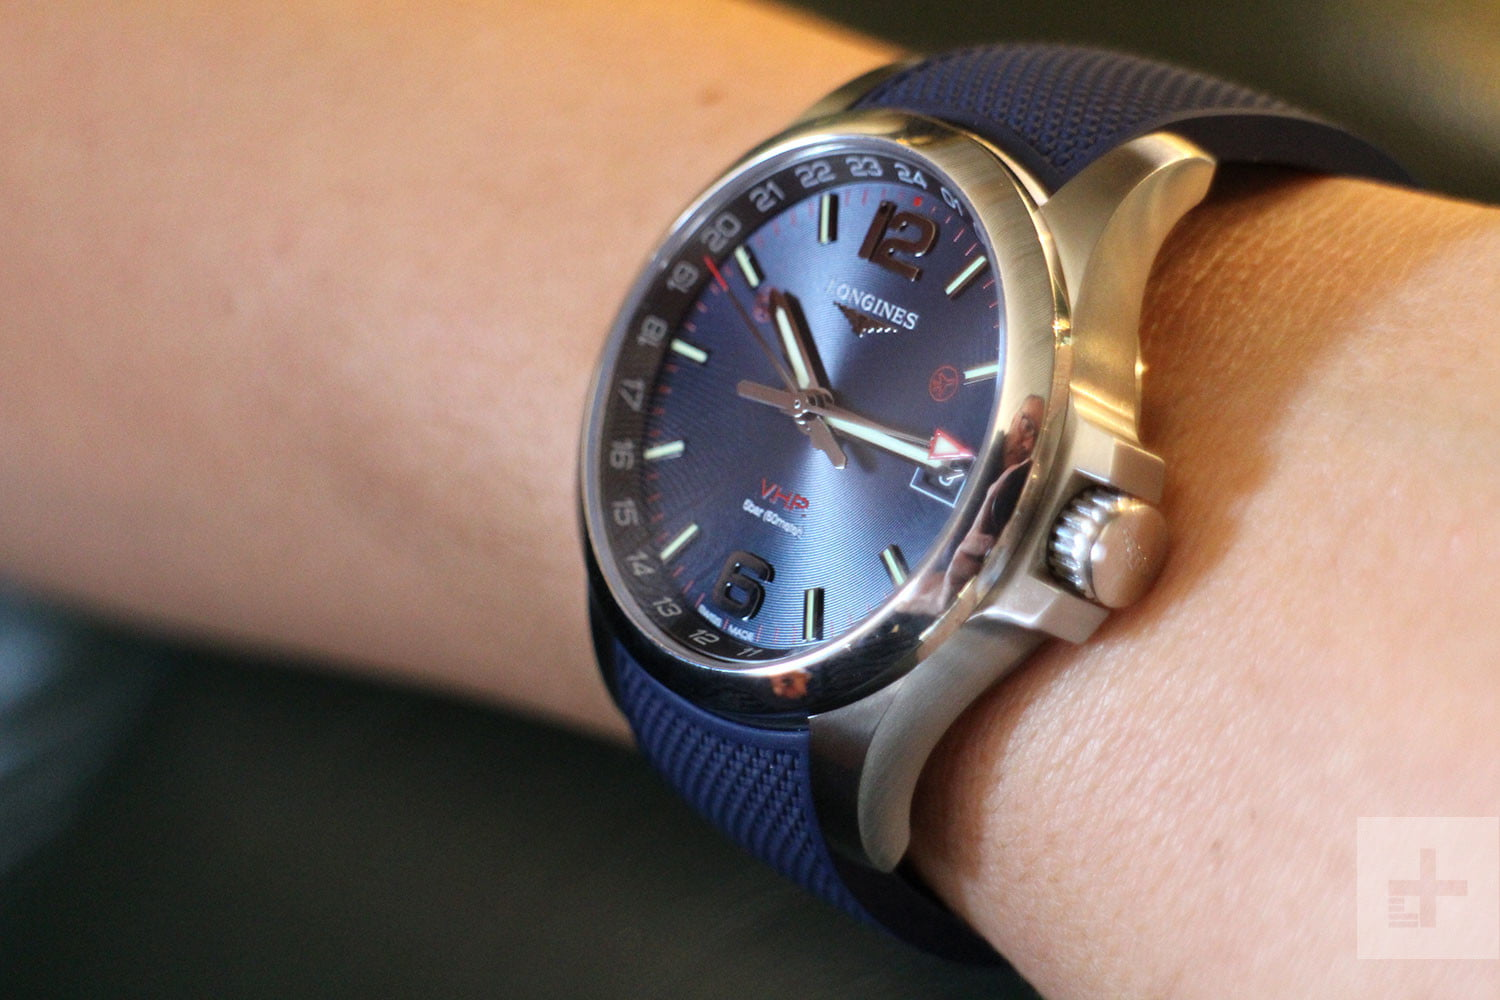 a7dfcda0d75 Longines  New Watch Uses The Flash On Your Phone To Transfer Data ...